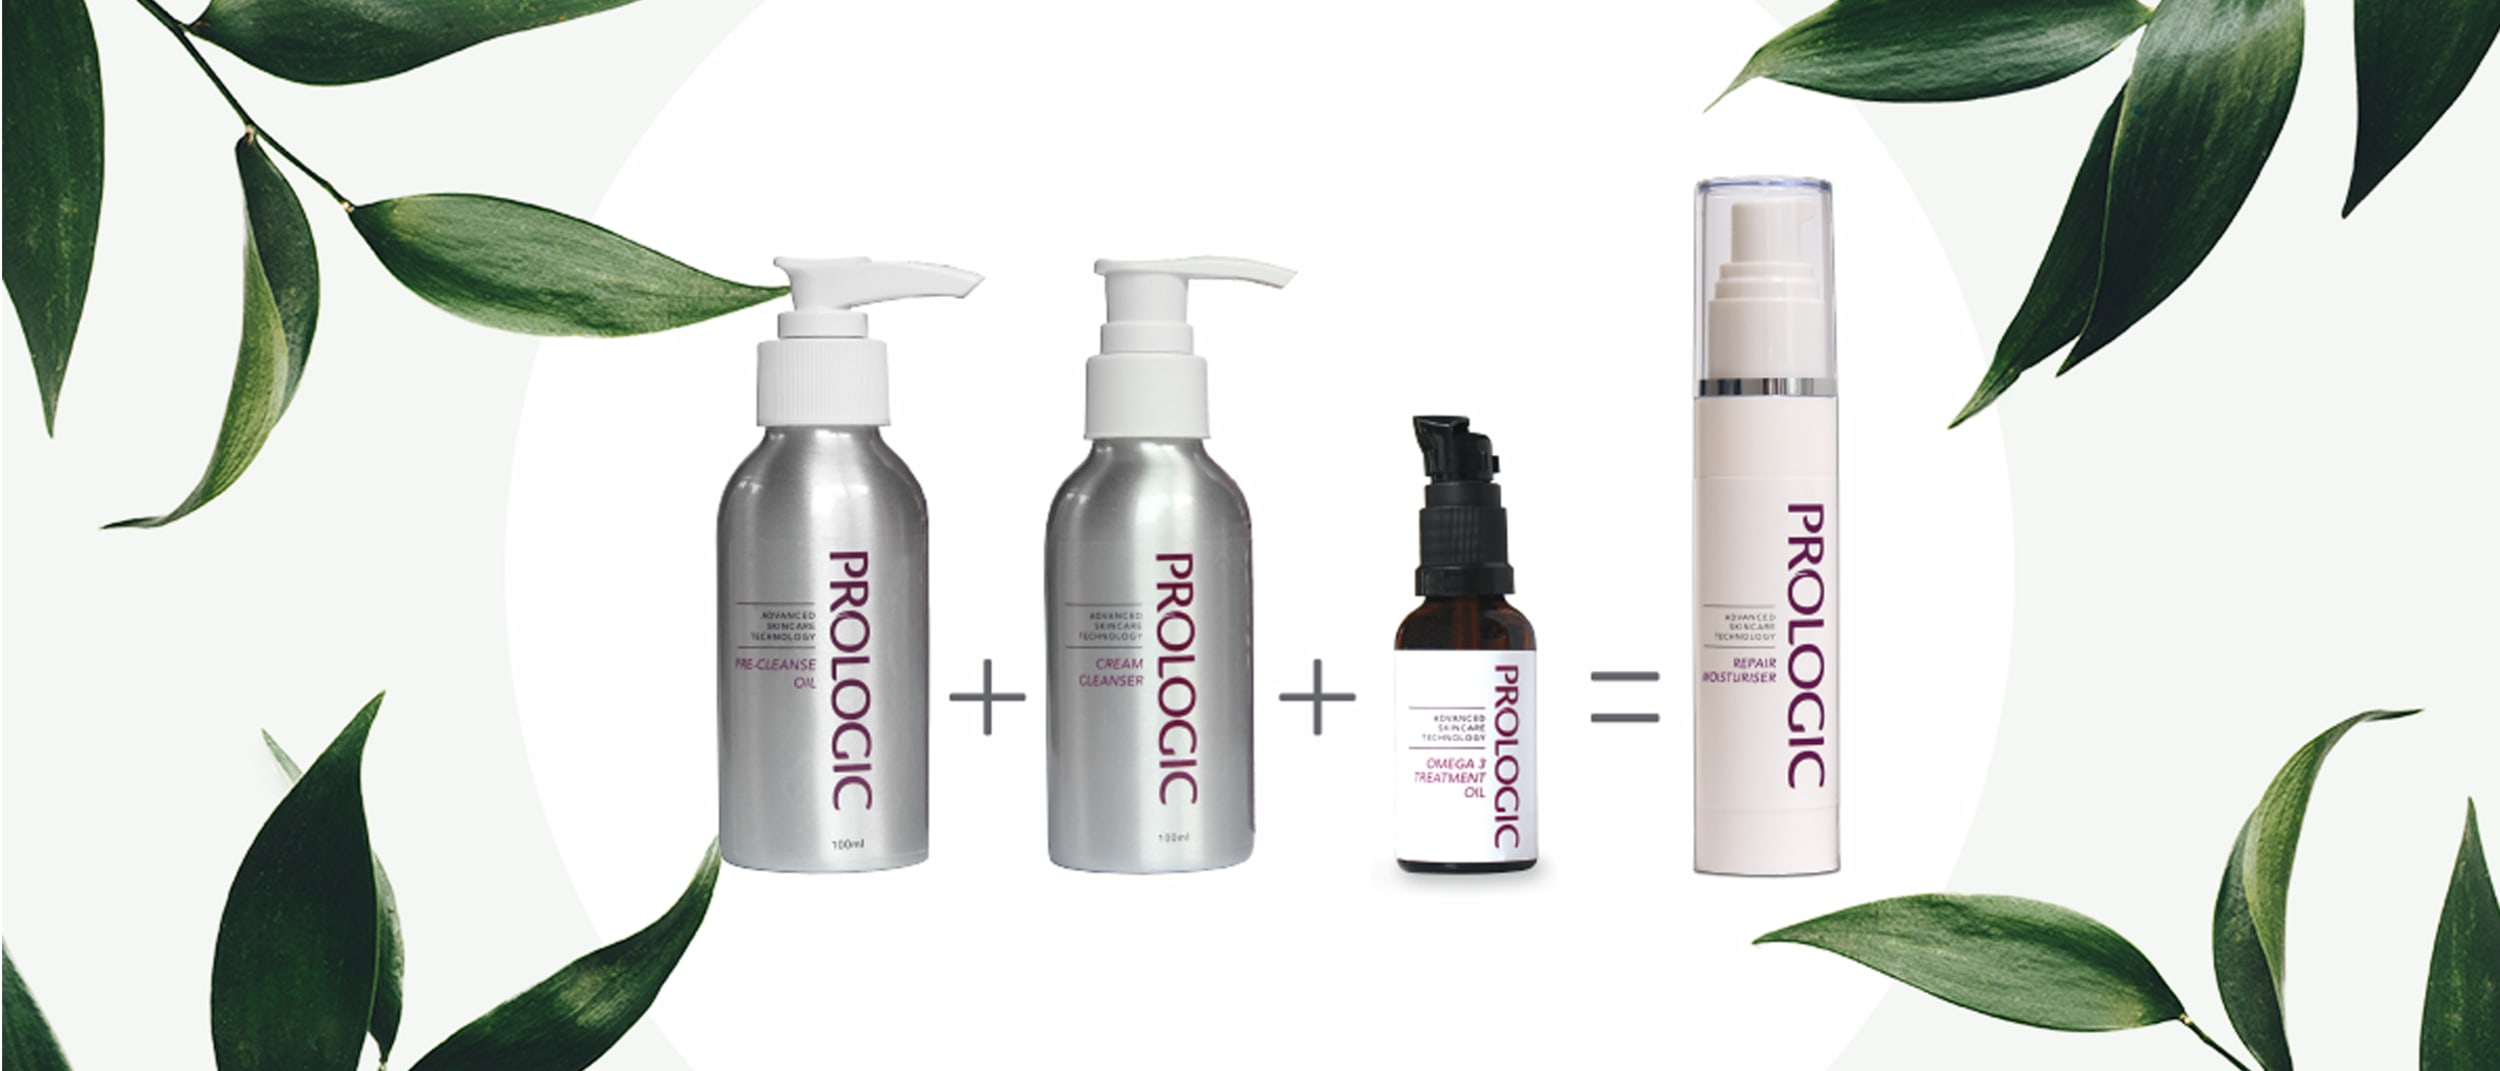 About Face: Special Prologic offer